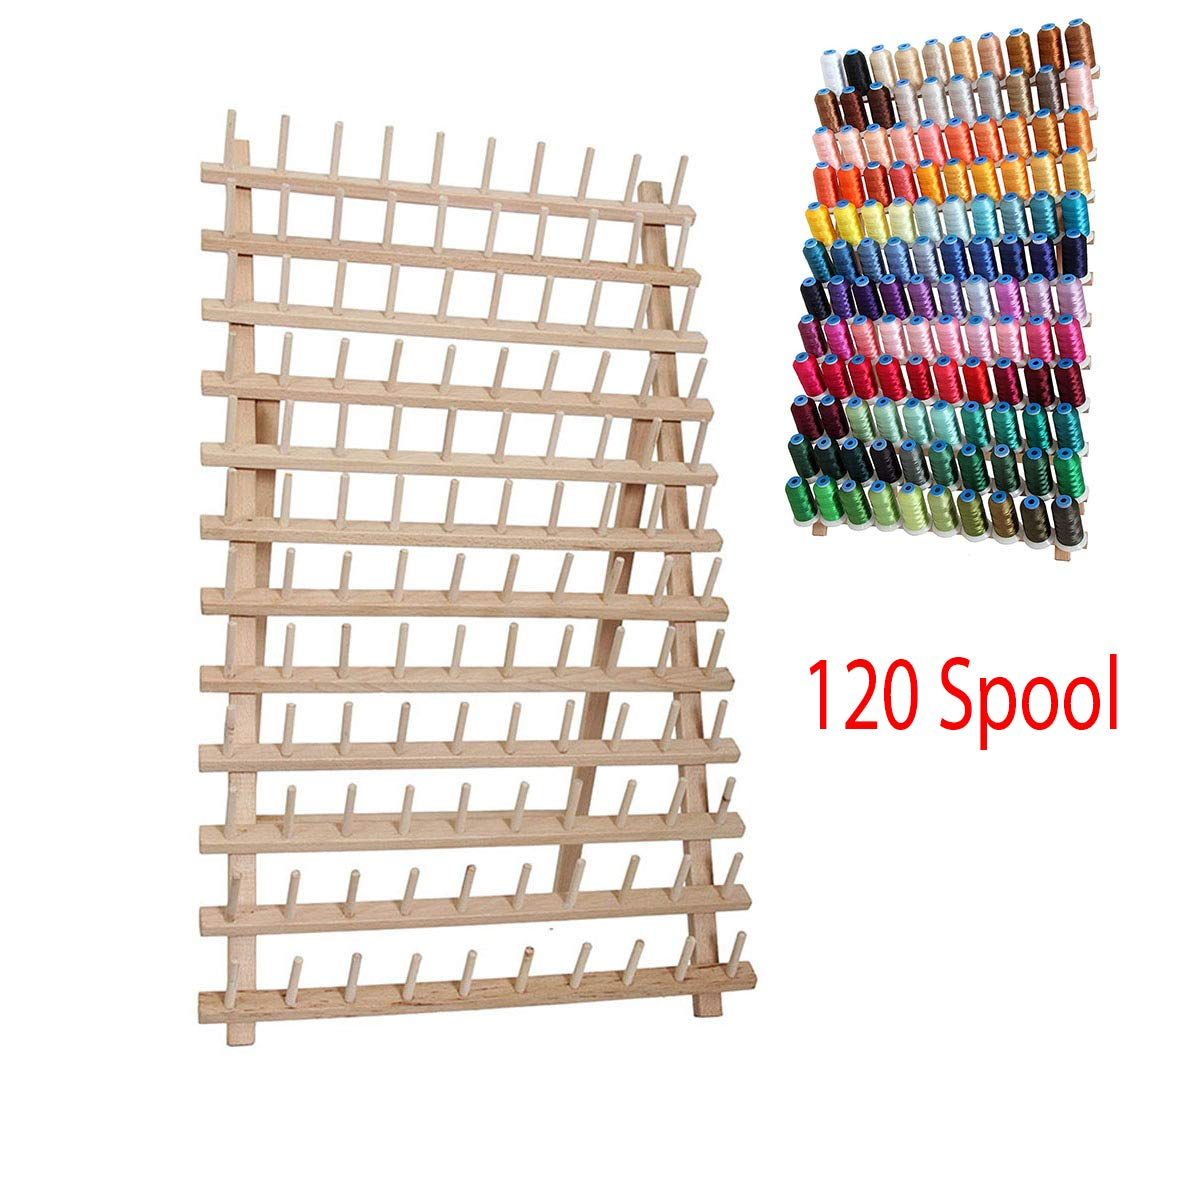 120 Spool Foldable Wood Thread Stand Rack Holds Organizer - Wall Mount Cone Embroidery Machine Sewing Storage Holder by PPH3 Shine